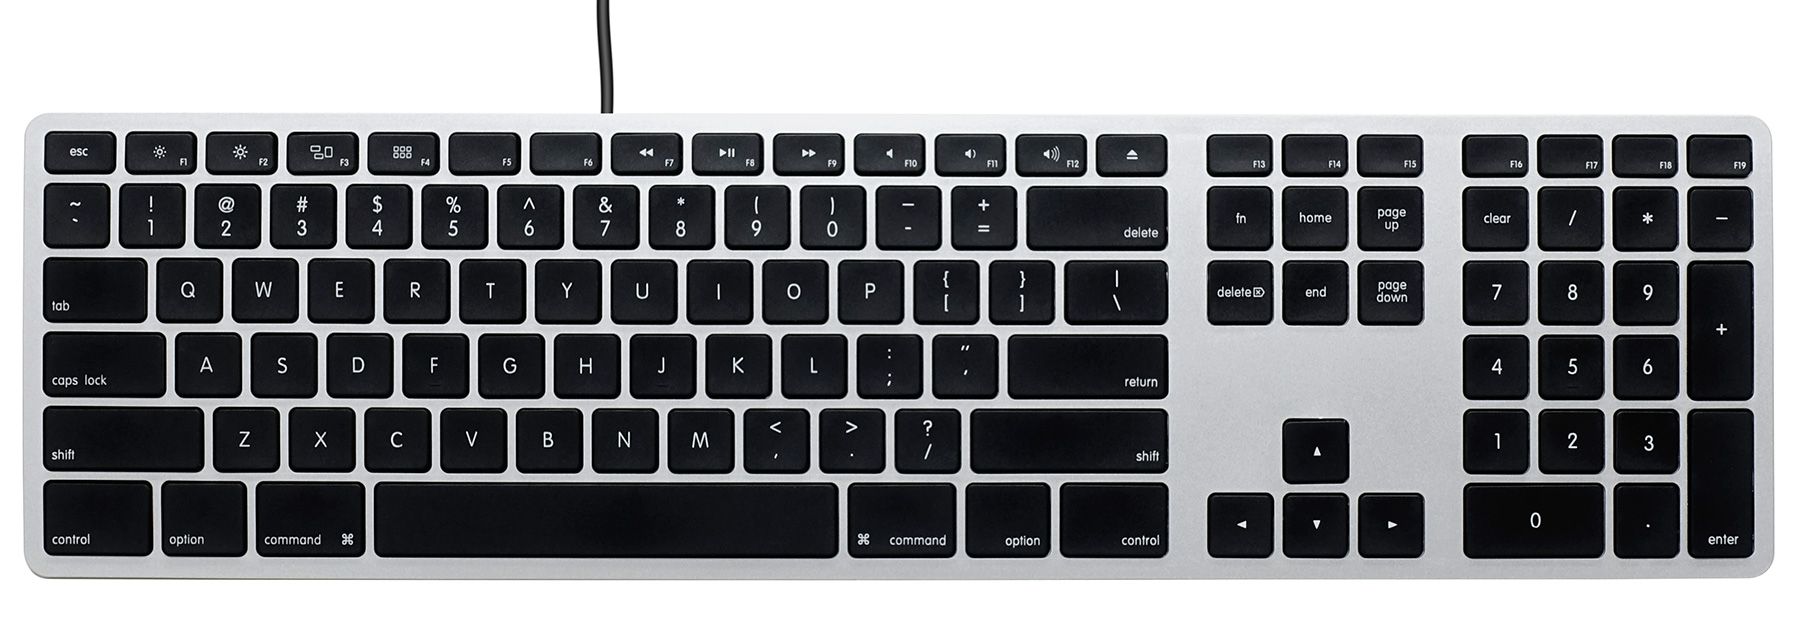 Matias Wired keyboard for Mac - Silver/Black 英語配列